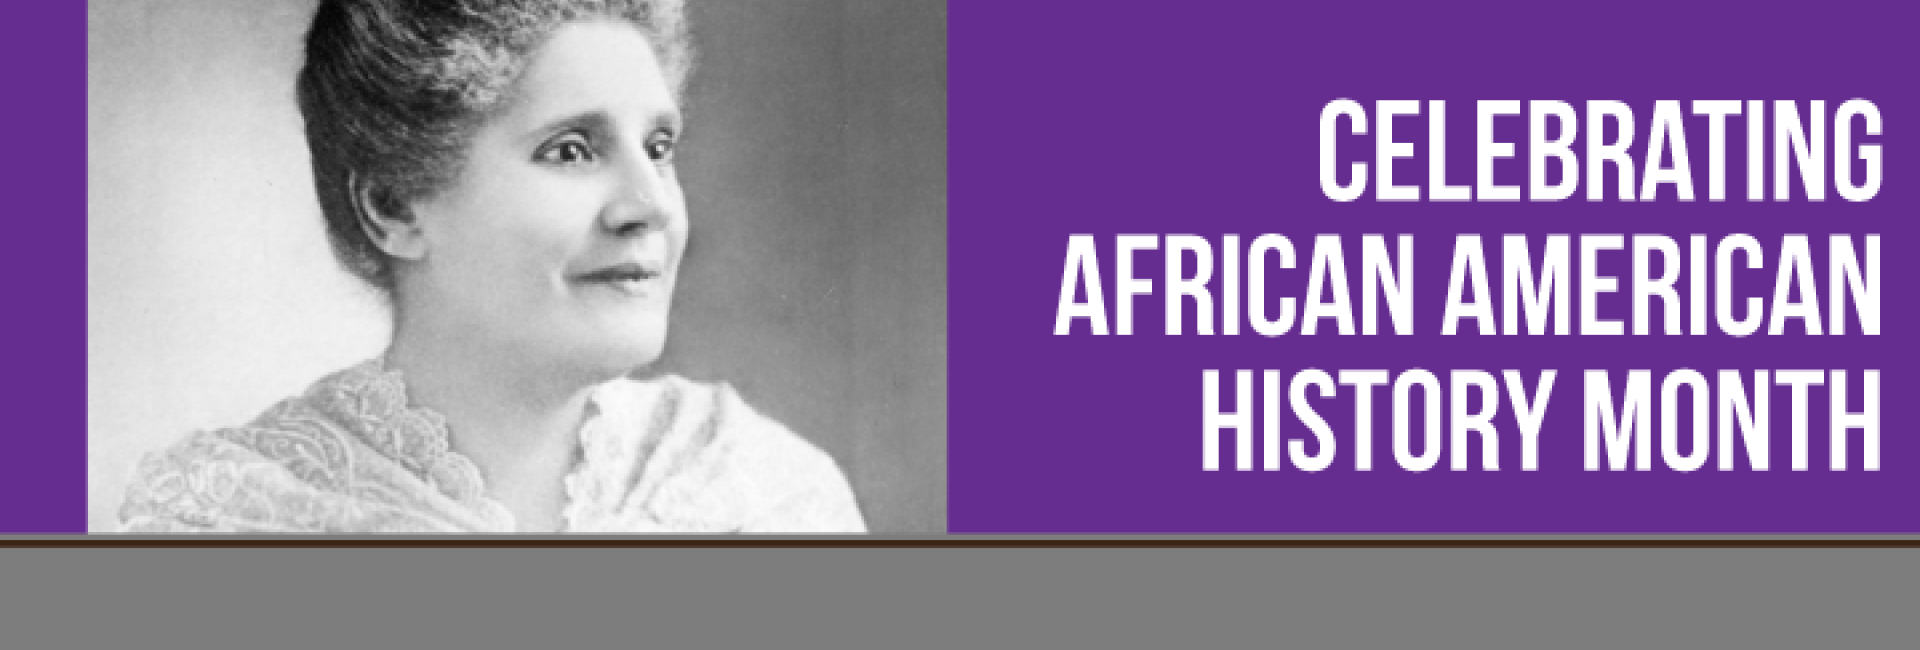 Image of African American History Month: Learn about Sarah Jones